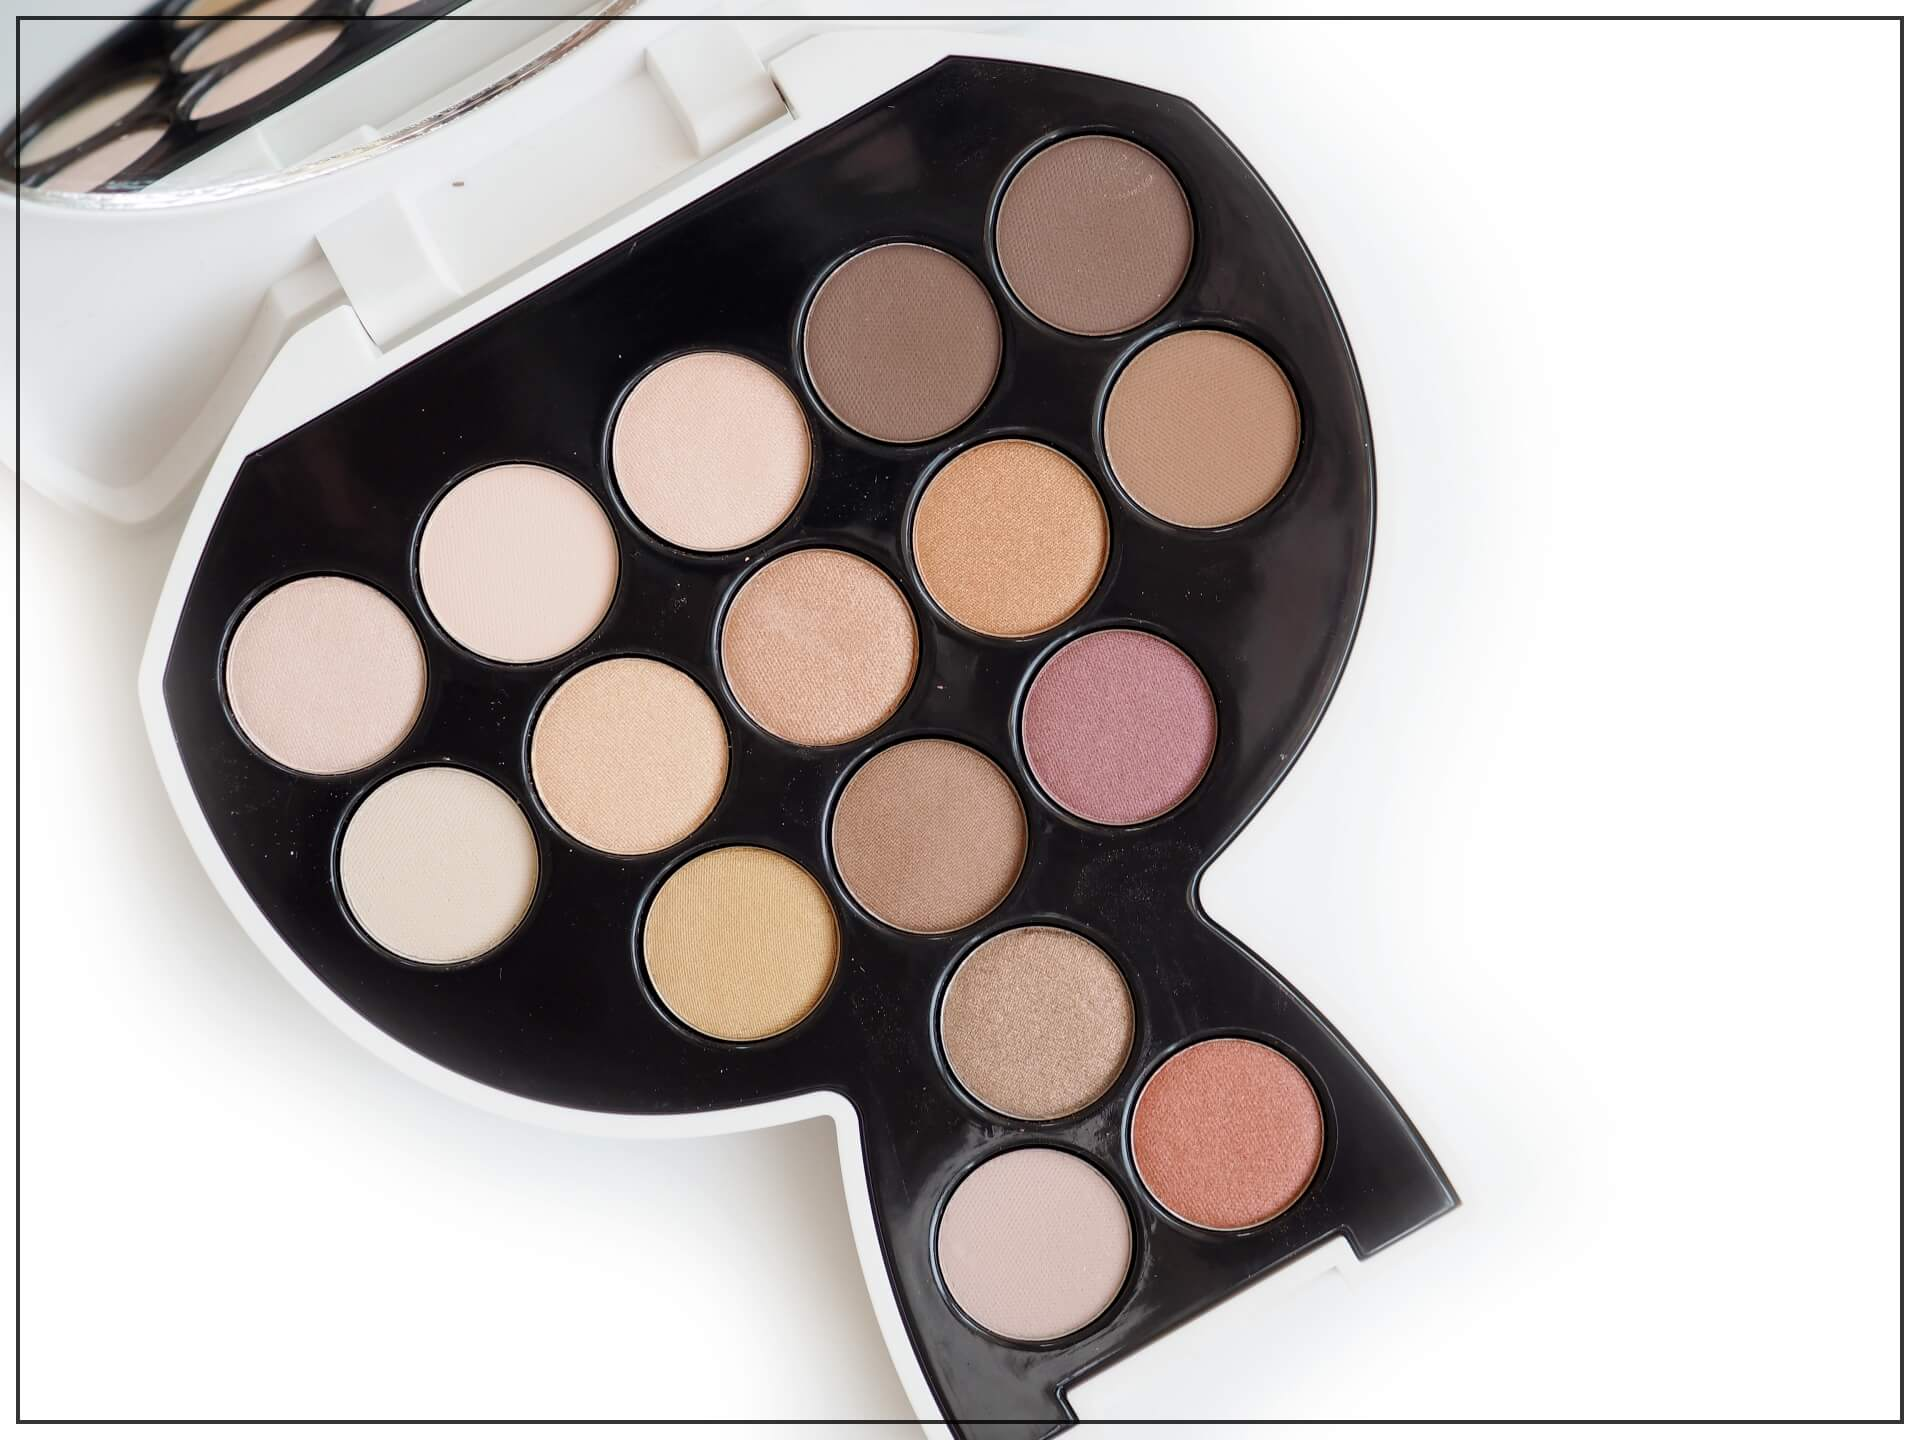 Karl Lagerfeld + ModelCo Choupette Collectable Eyeshadow